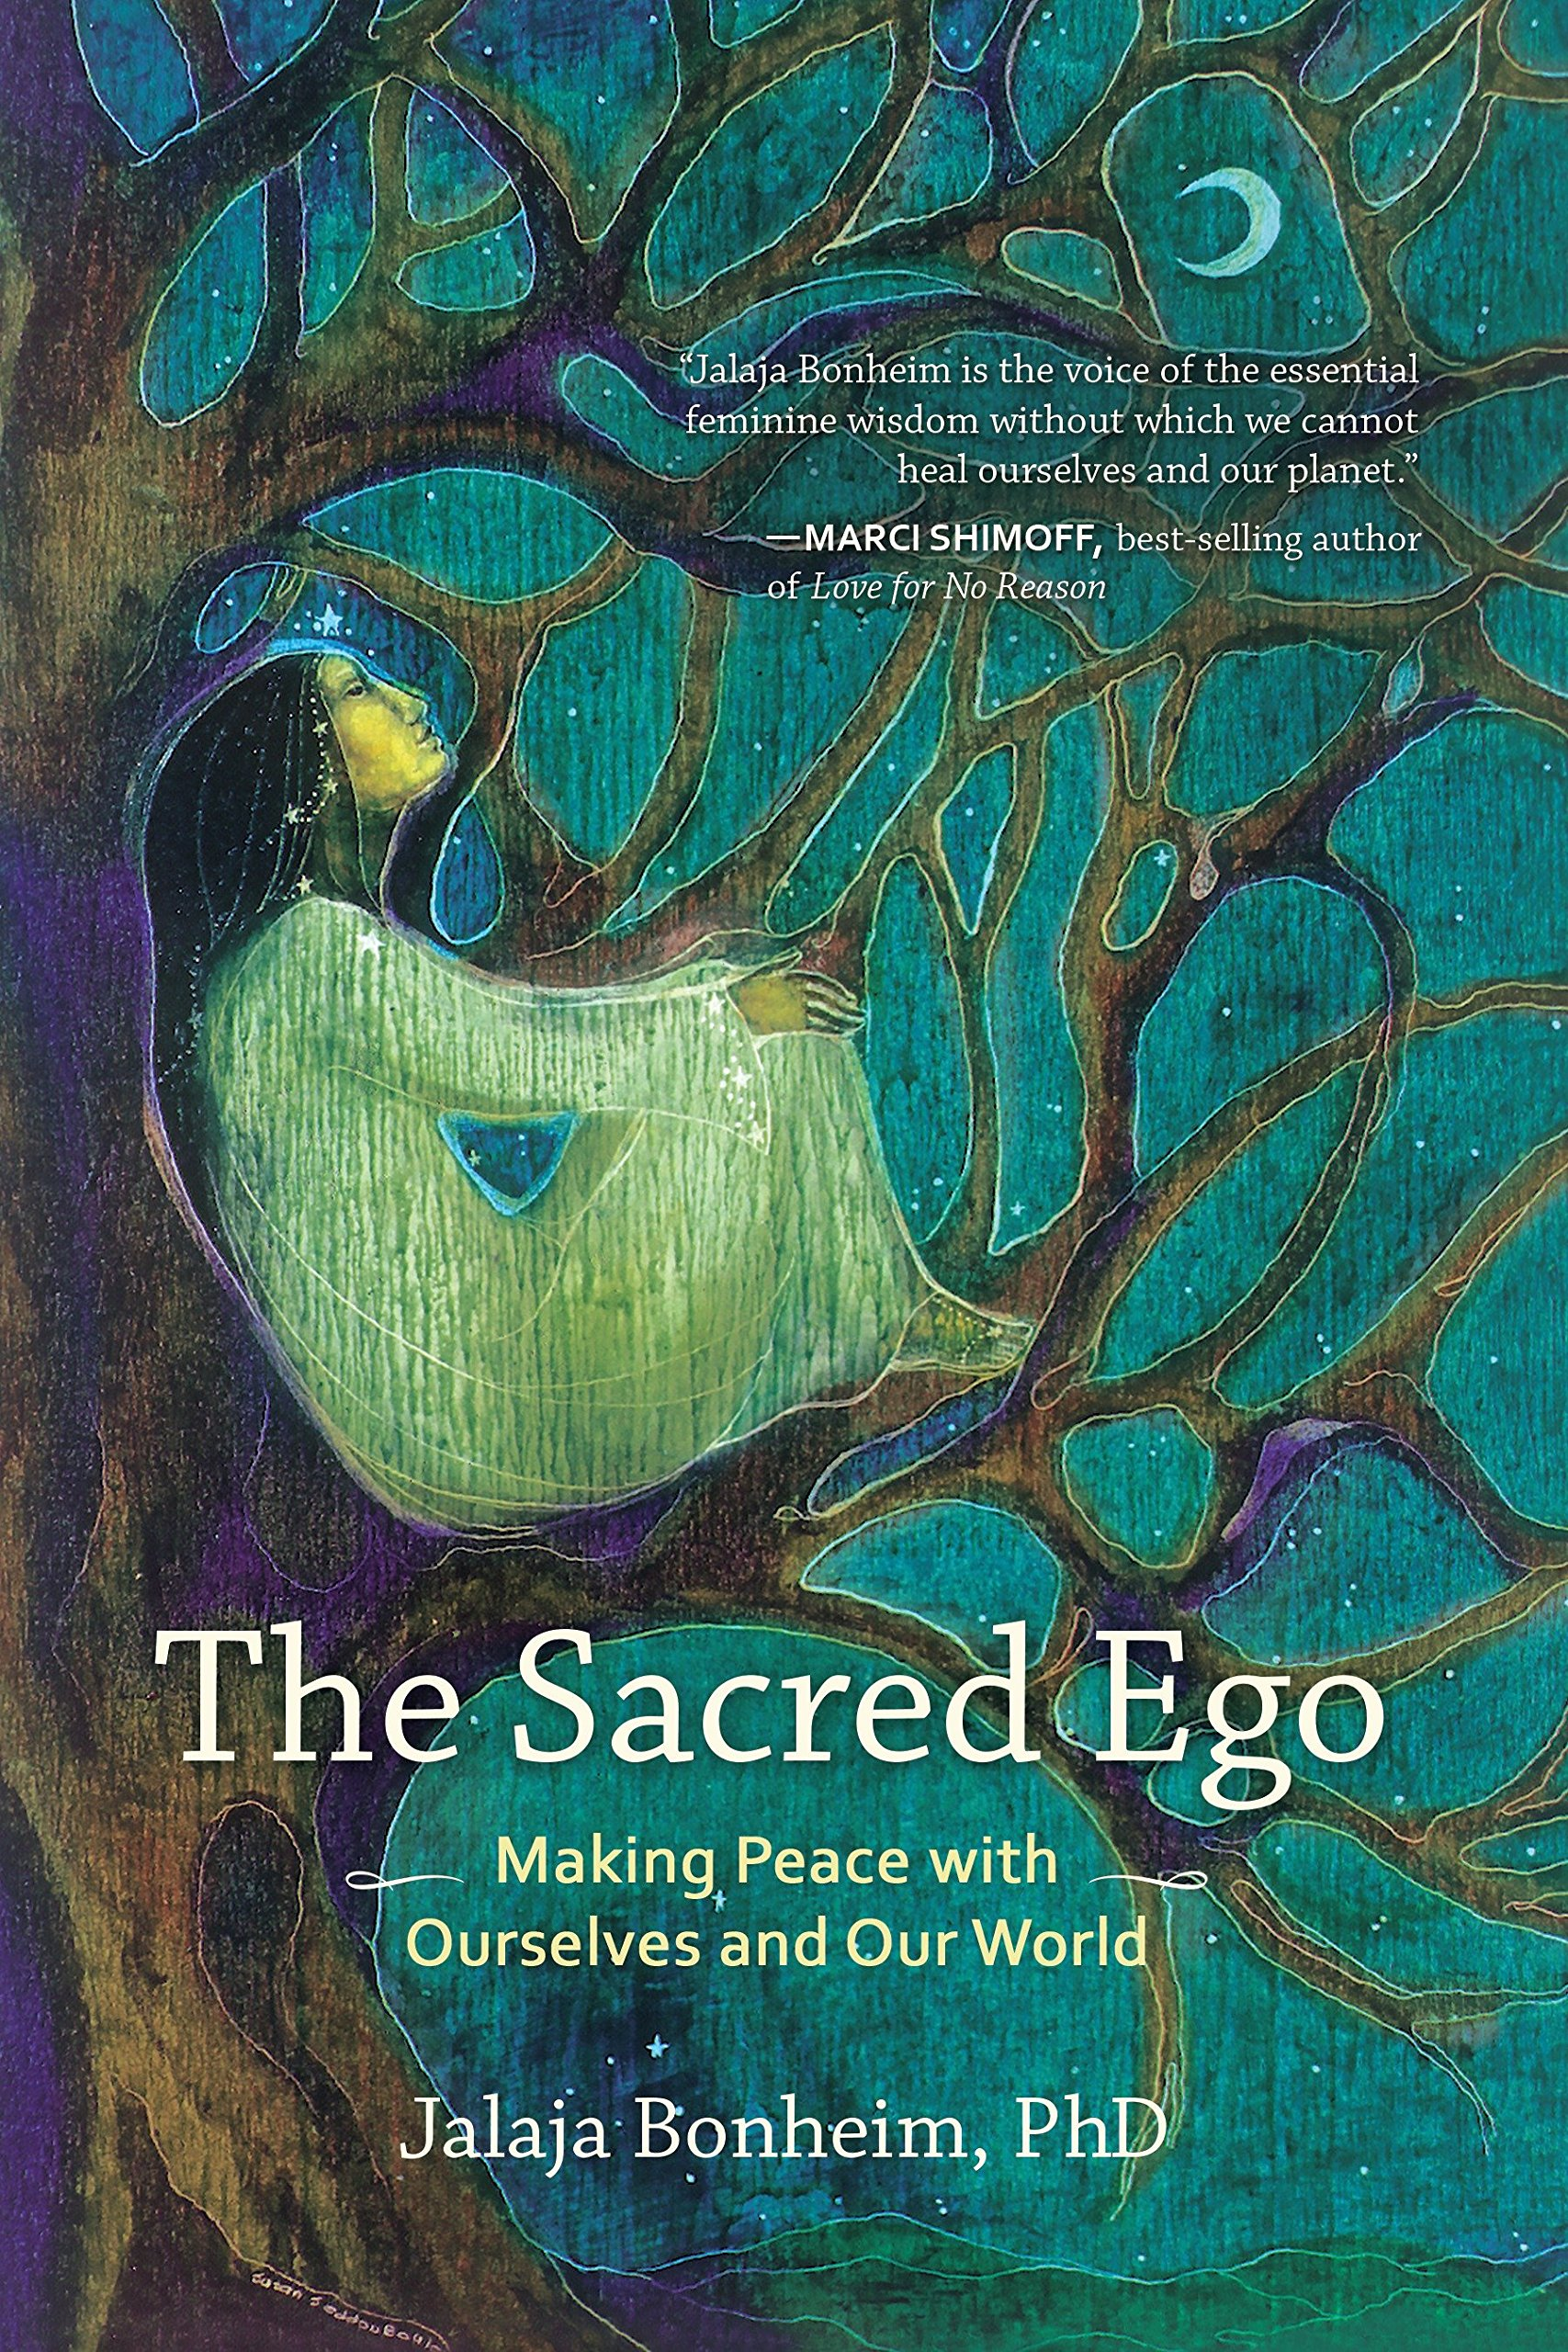 Amazon.com: The Sacred Ego: Making Peace with Ourselves and Our World ( Sacred Activism) (9781583949436): Jalaja Bonheim: Books